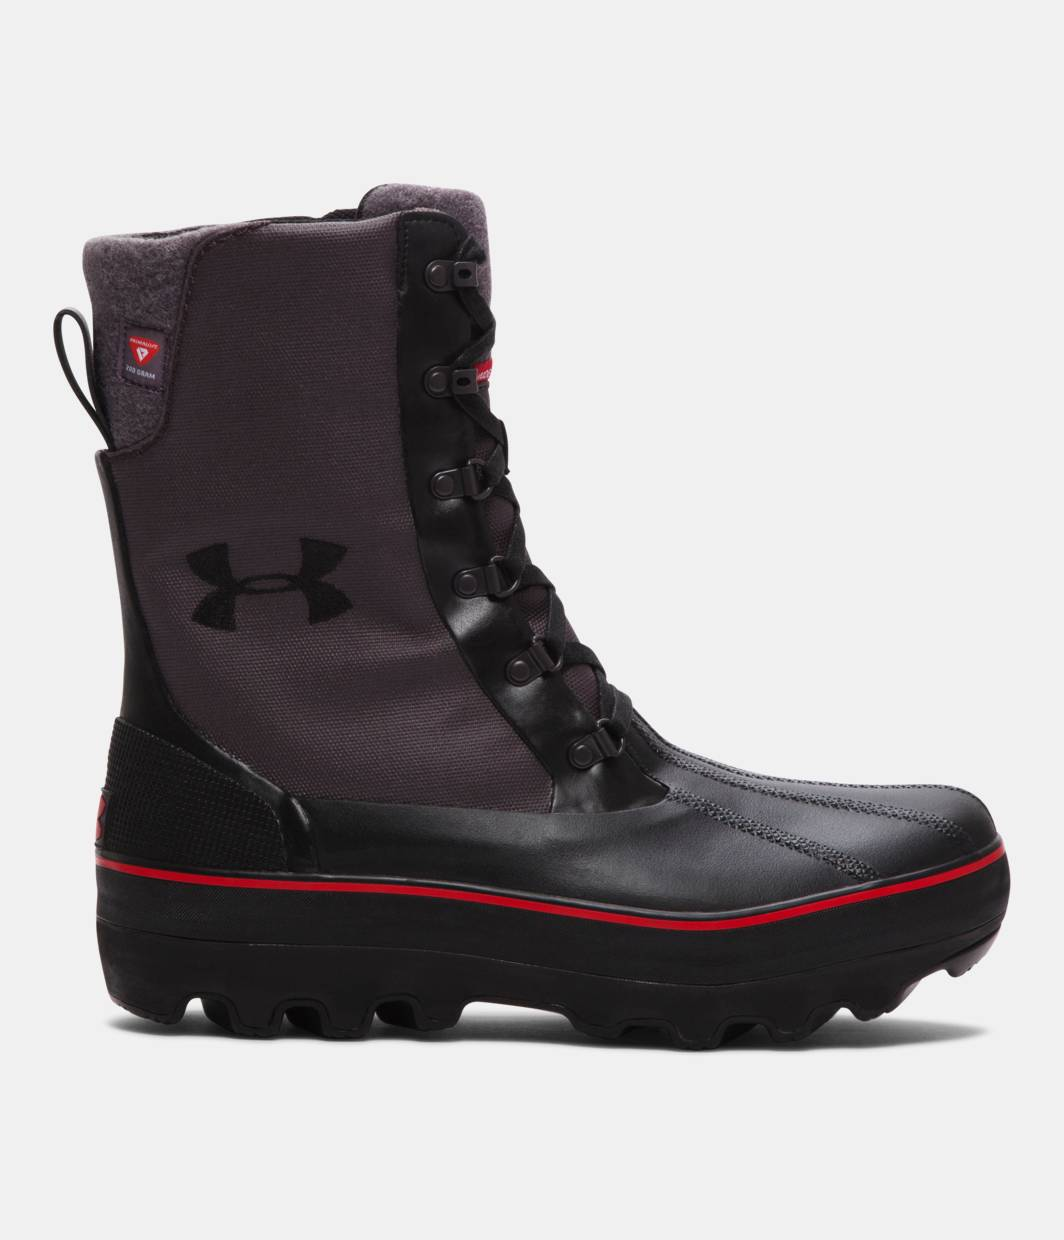 Clackamas 200 Boot - Men's